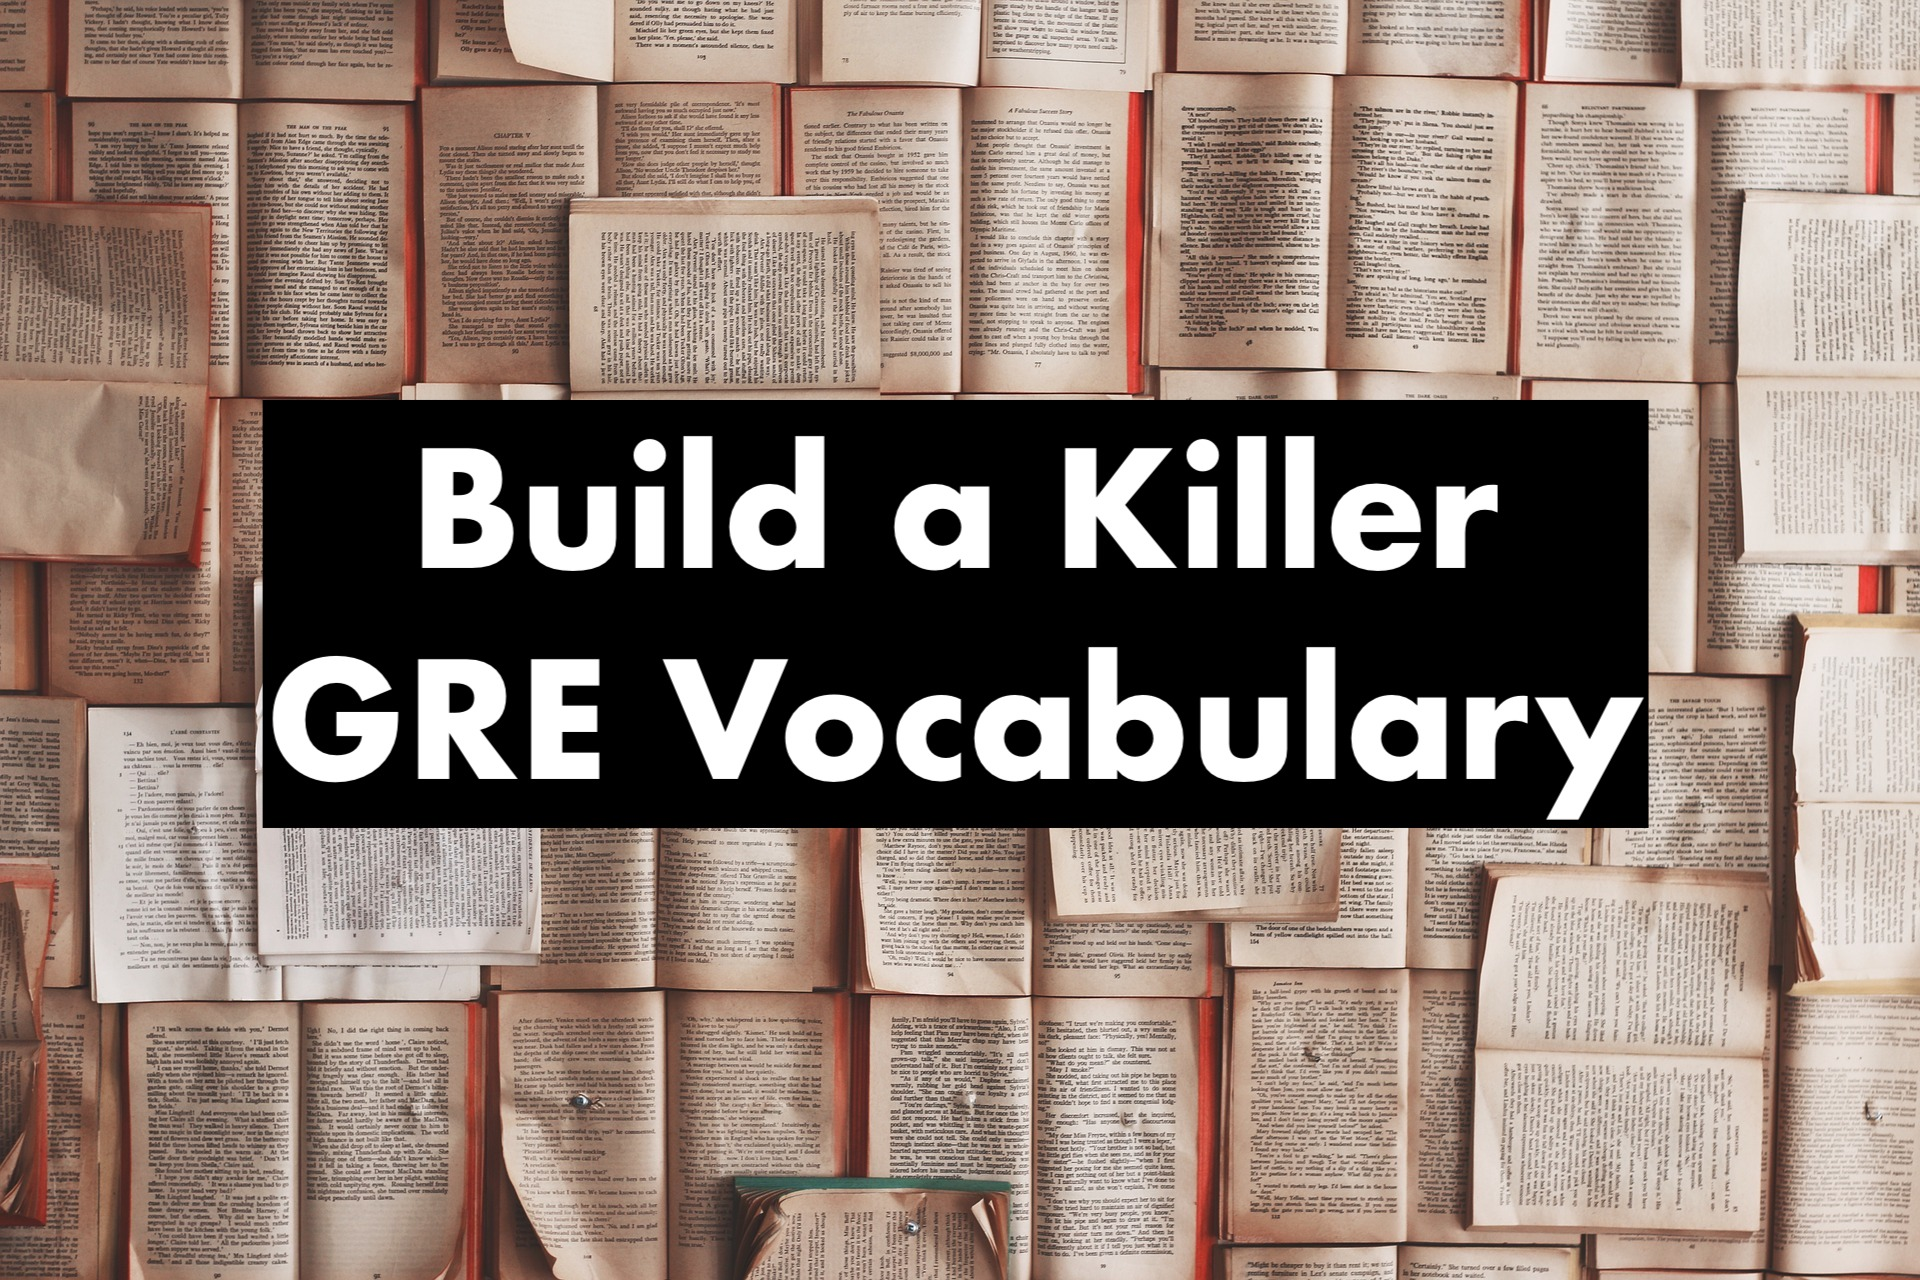 How to build a killer GRE Vocabulary | Plusprep Education